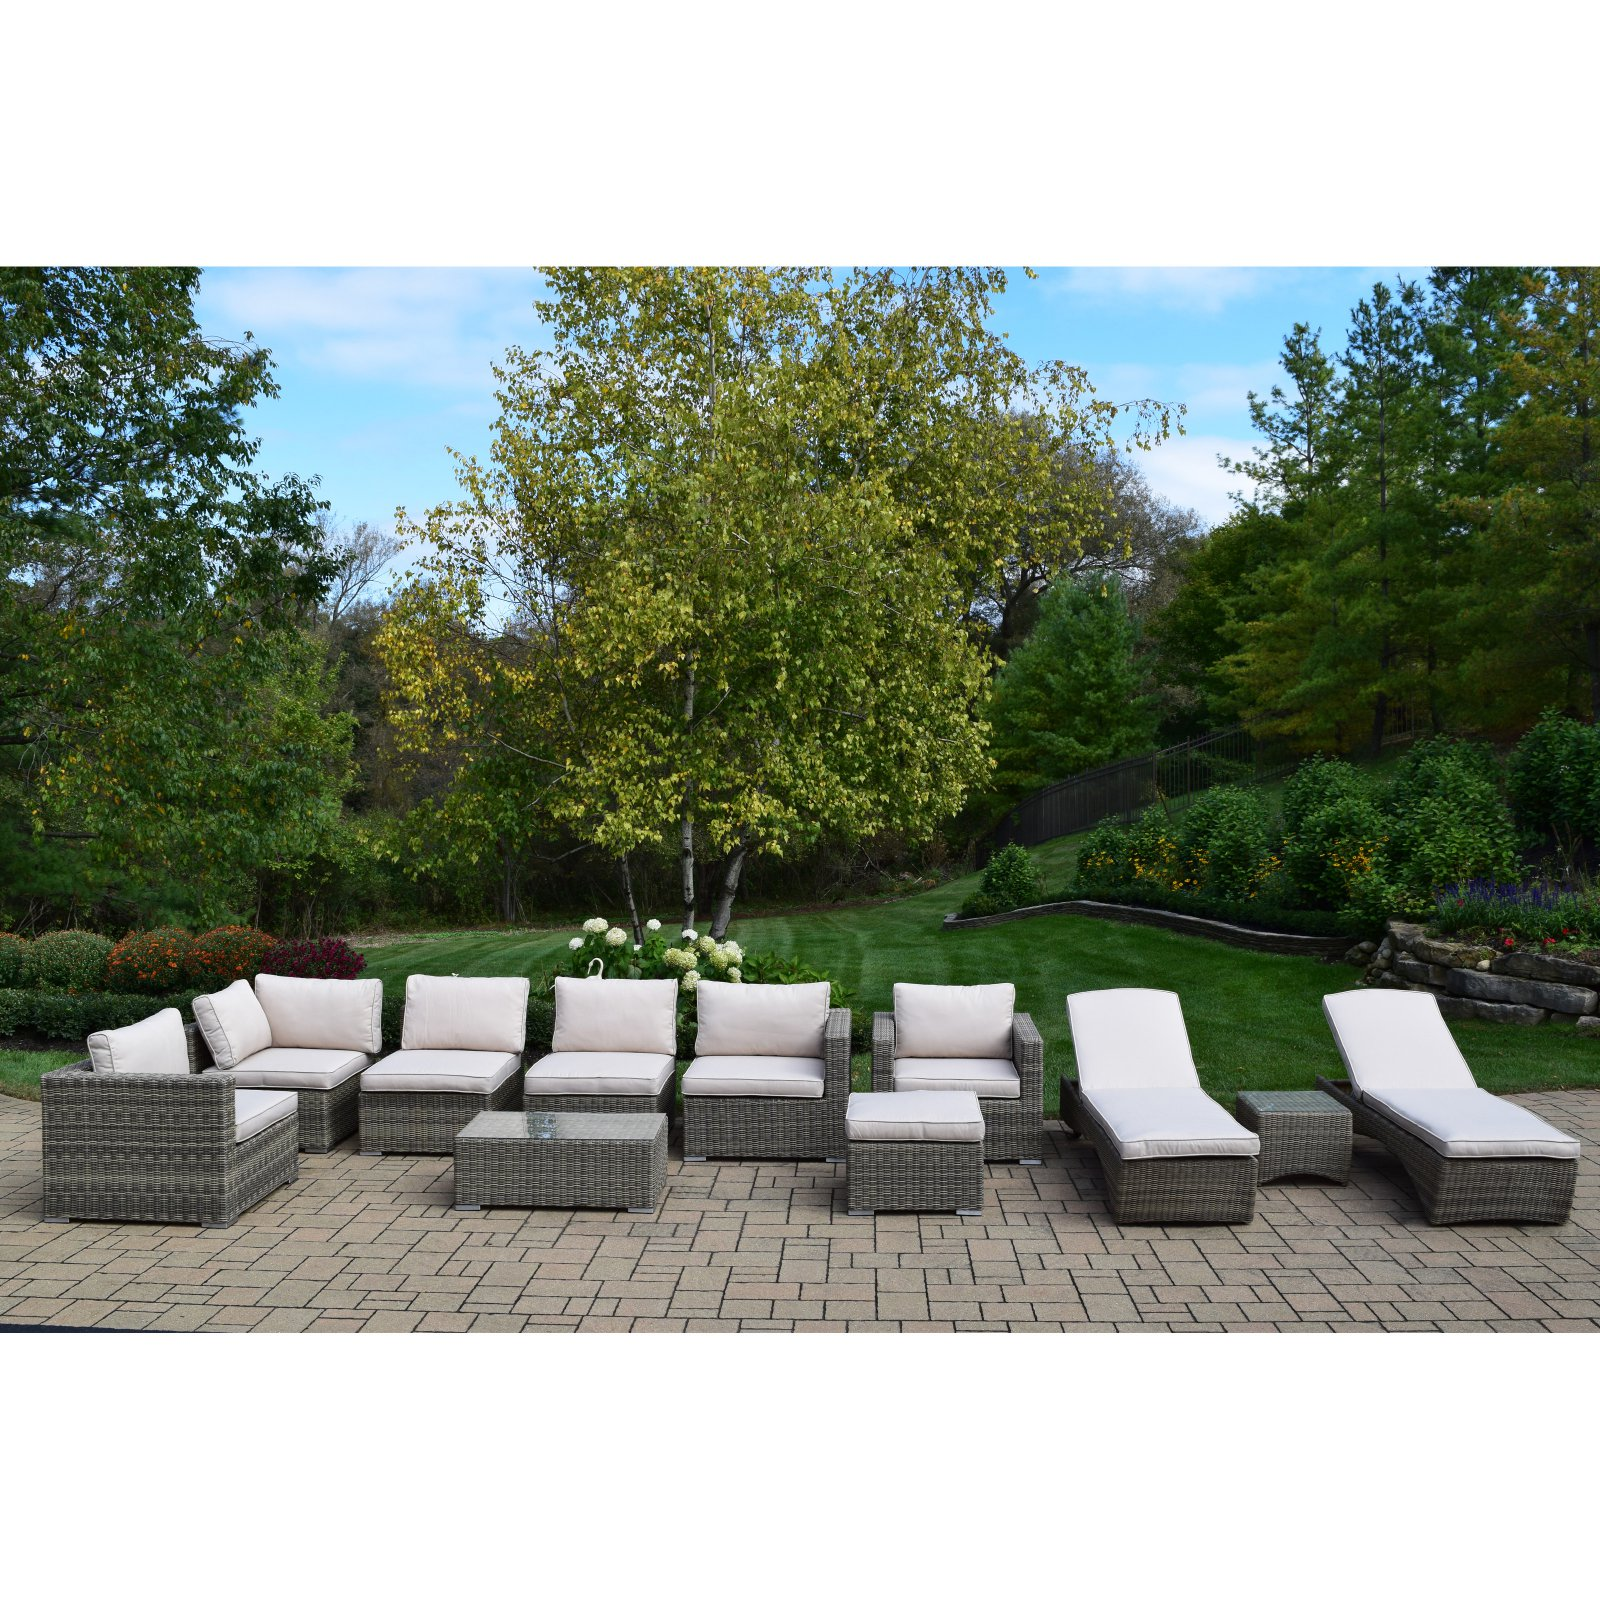 Oakland Living Borneo Modular Resin Wicker 11 Piece Sectional Patio Conversation Set